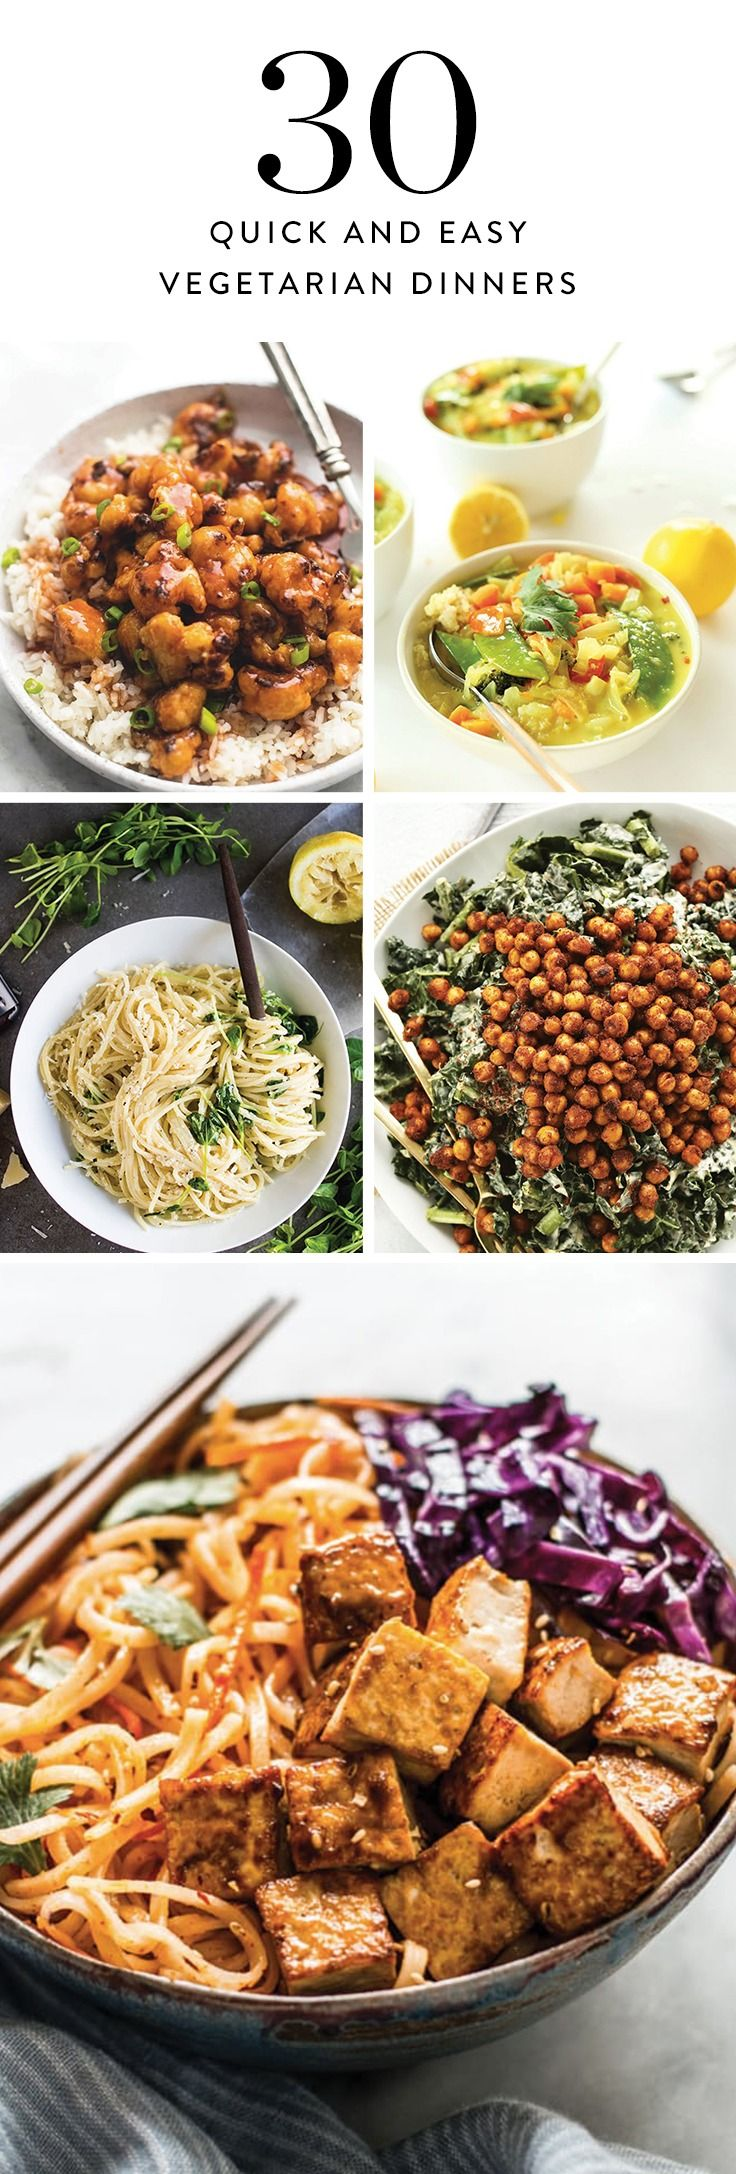 40 Easy Vegetarian Dinner Ideas You Can Make in 30 Minutes or Less